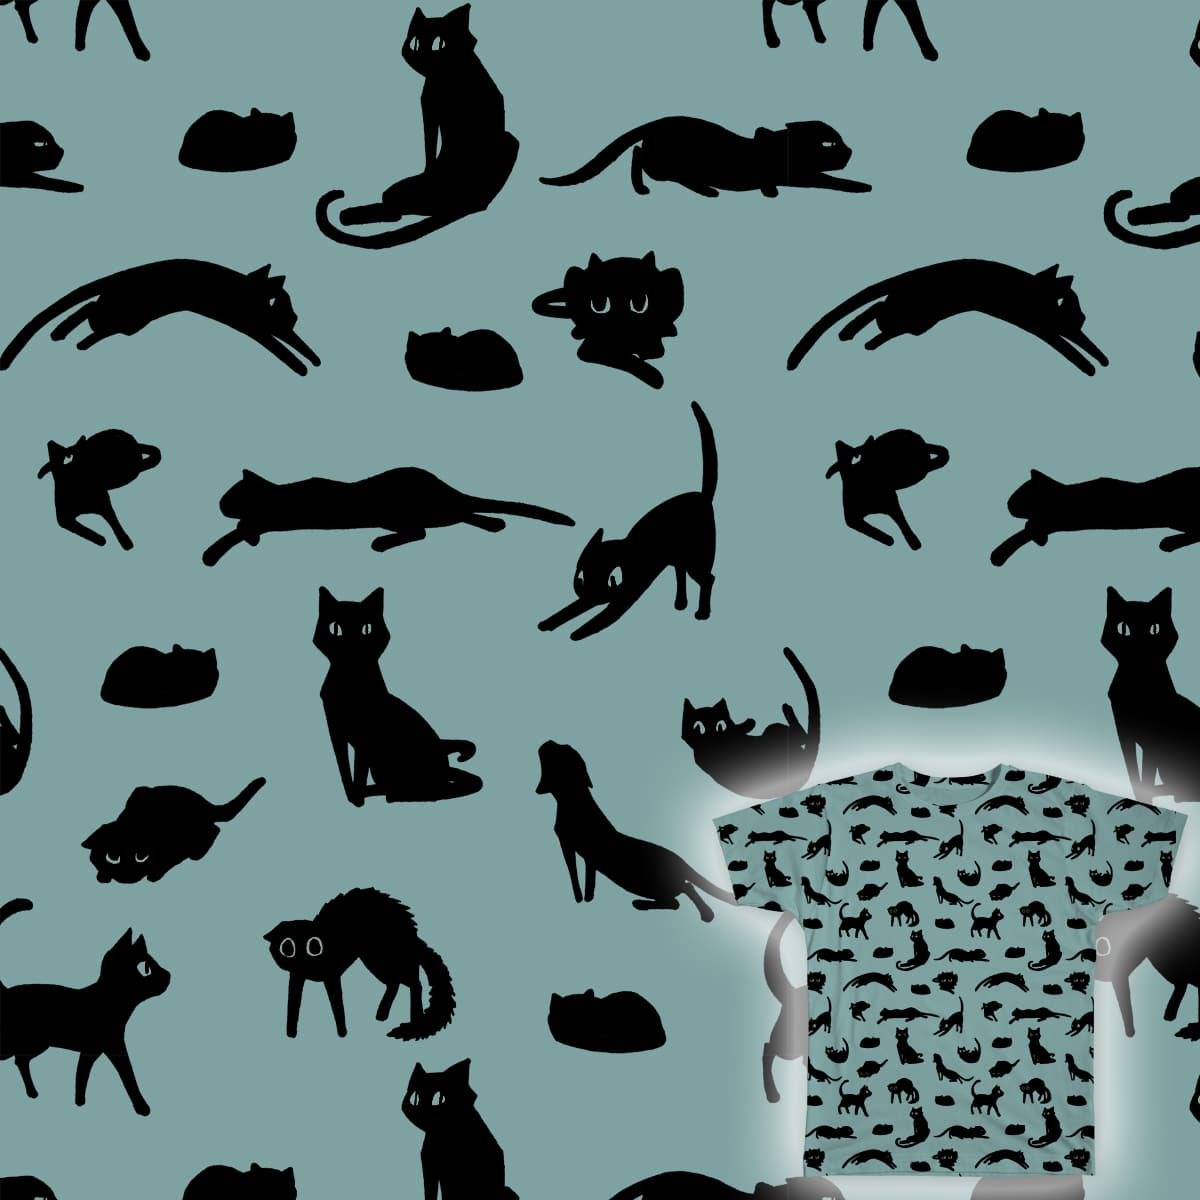 Scaredy Cats by FindChaos on Threadless